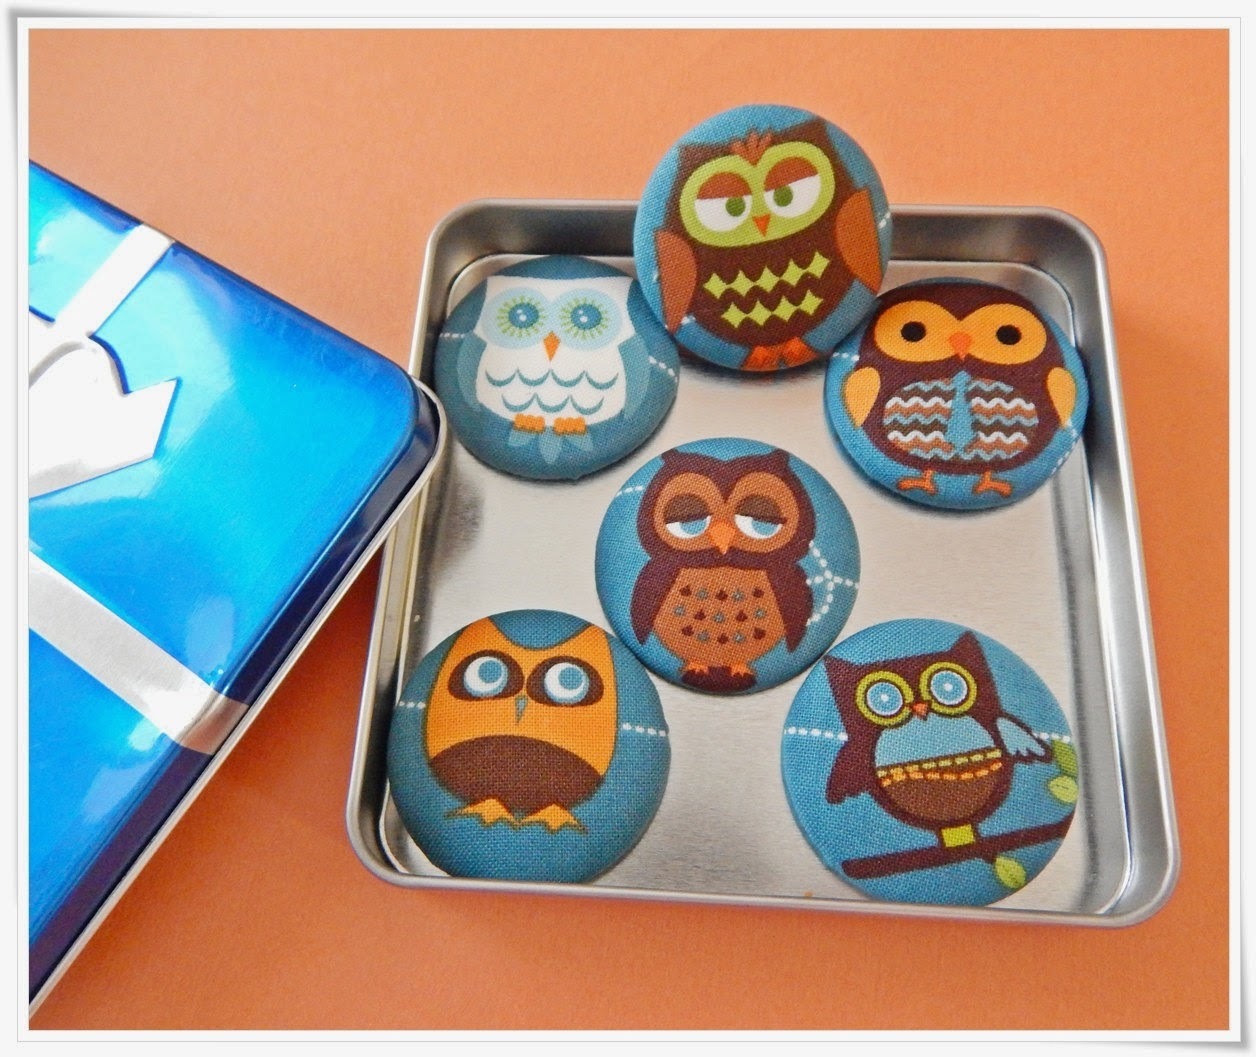 http://zzzonkowl.blogspot.com/2014/04/enter-my-giveaway-to-win-set-of-6-owl.html